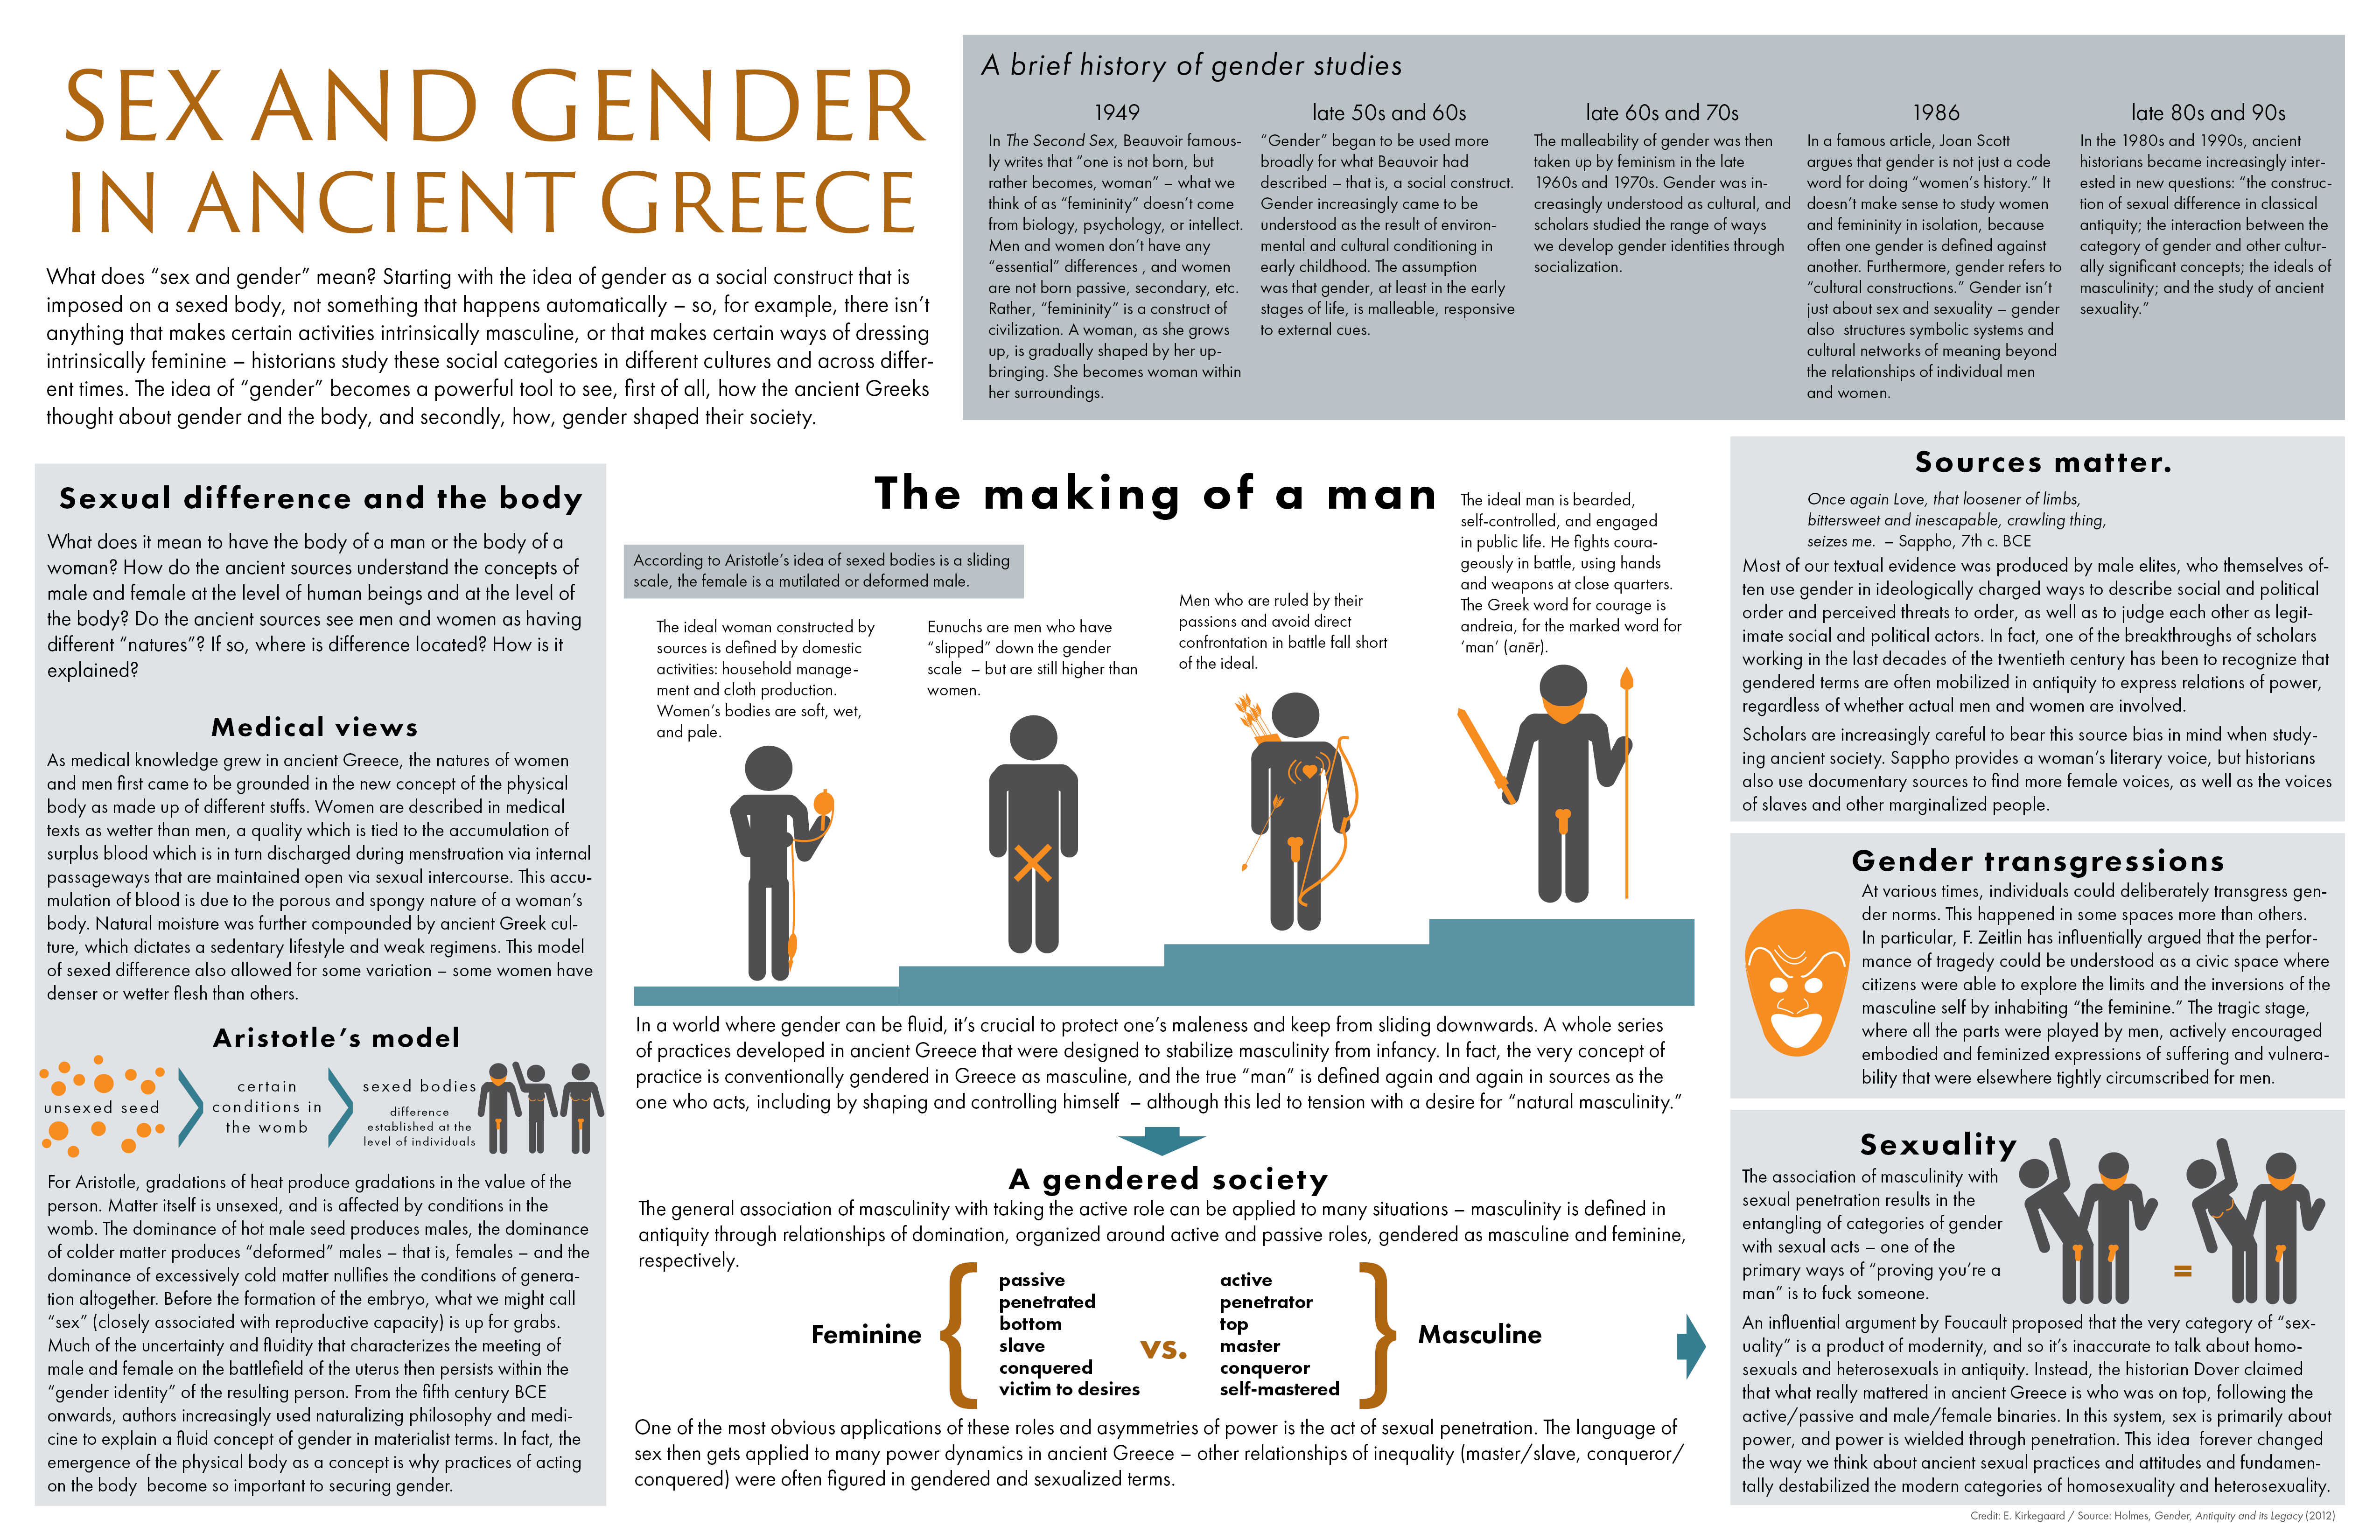 in case you're wondering, here's a handy guide to sex and gender in ancient Greece